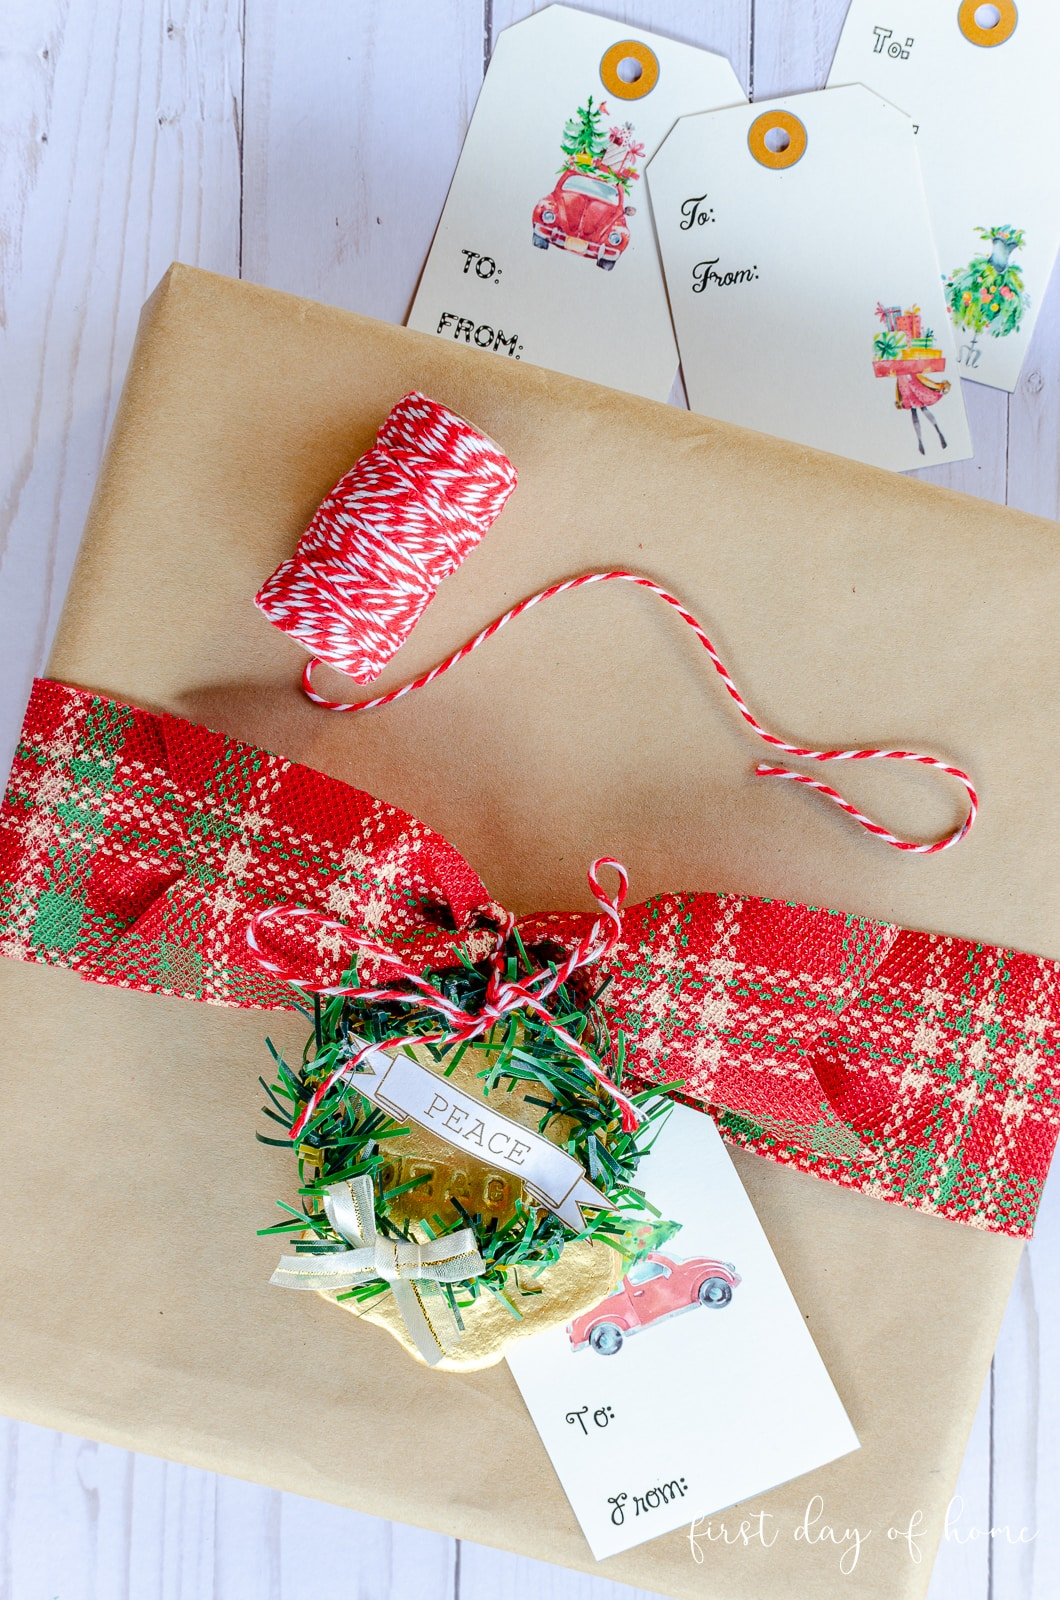 Free printable Christmas gift tags on brown paper wrapped gift with mini Christmas wreath and salt dough ornament